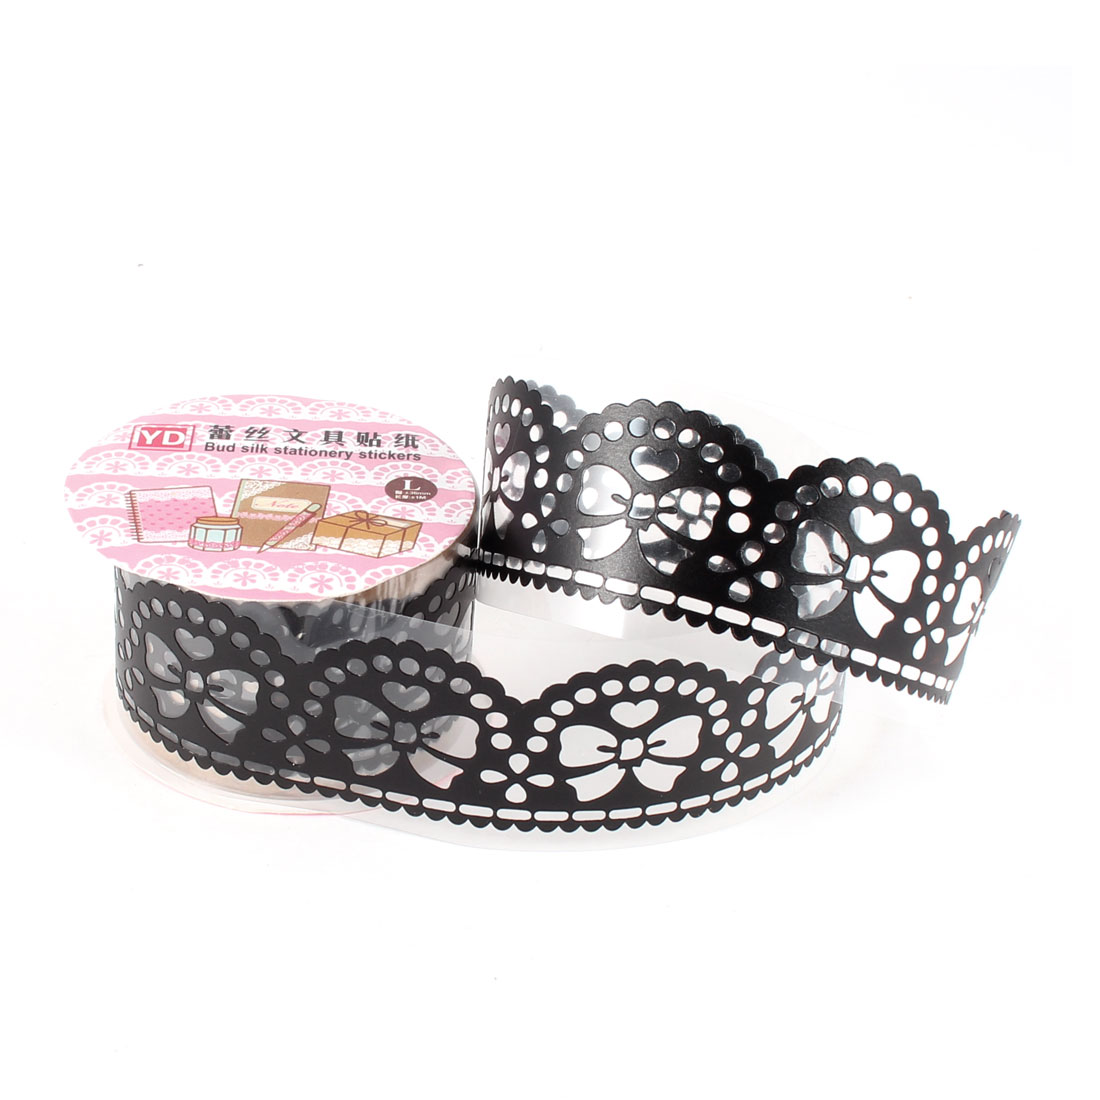 Hollow Lace Diary Stationery Plastic Decorative Sticker Adhesive Tape Black